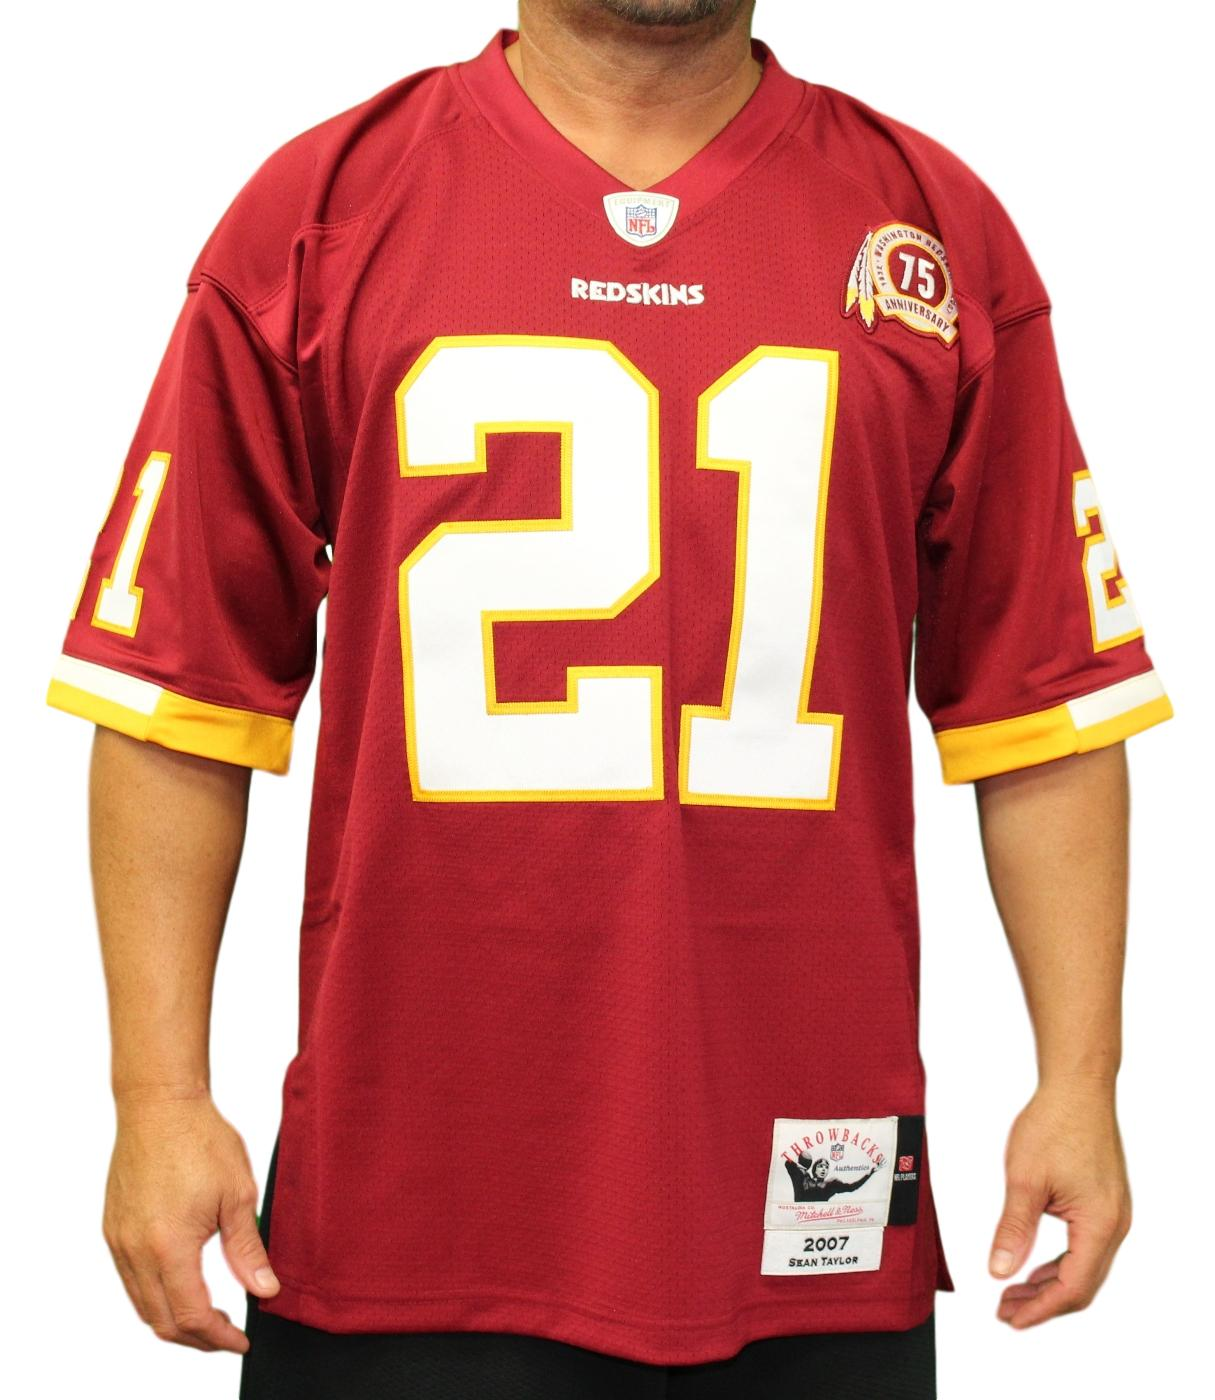 brand new f56e5 ac0c4 Details about Sean Taylor Washington Redskins Mitchell & Ness Authentic  2007 Red NFL Jersey